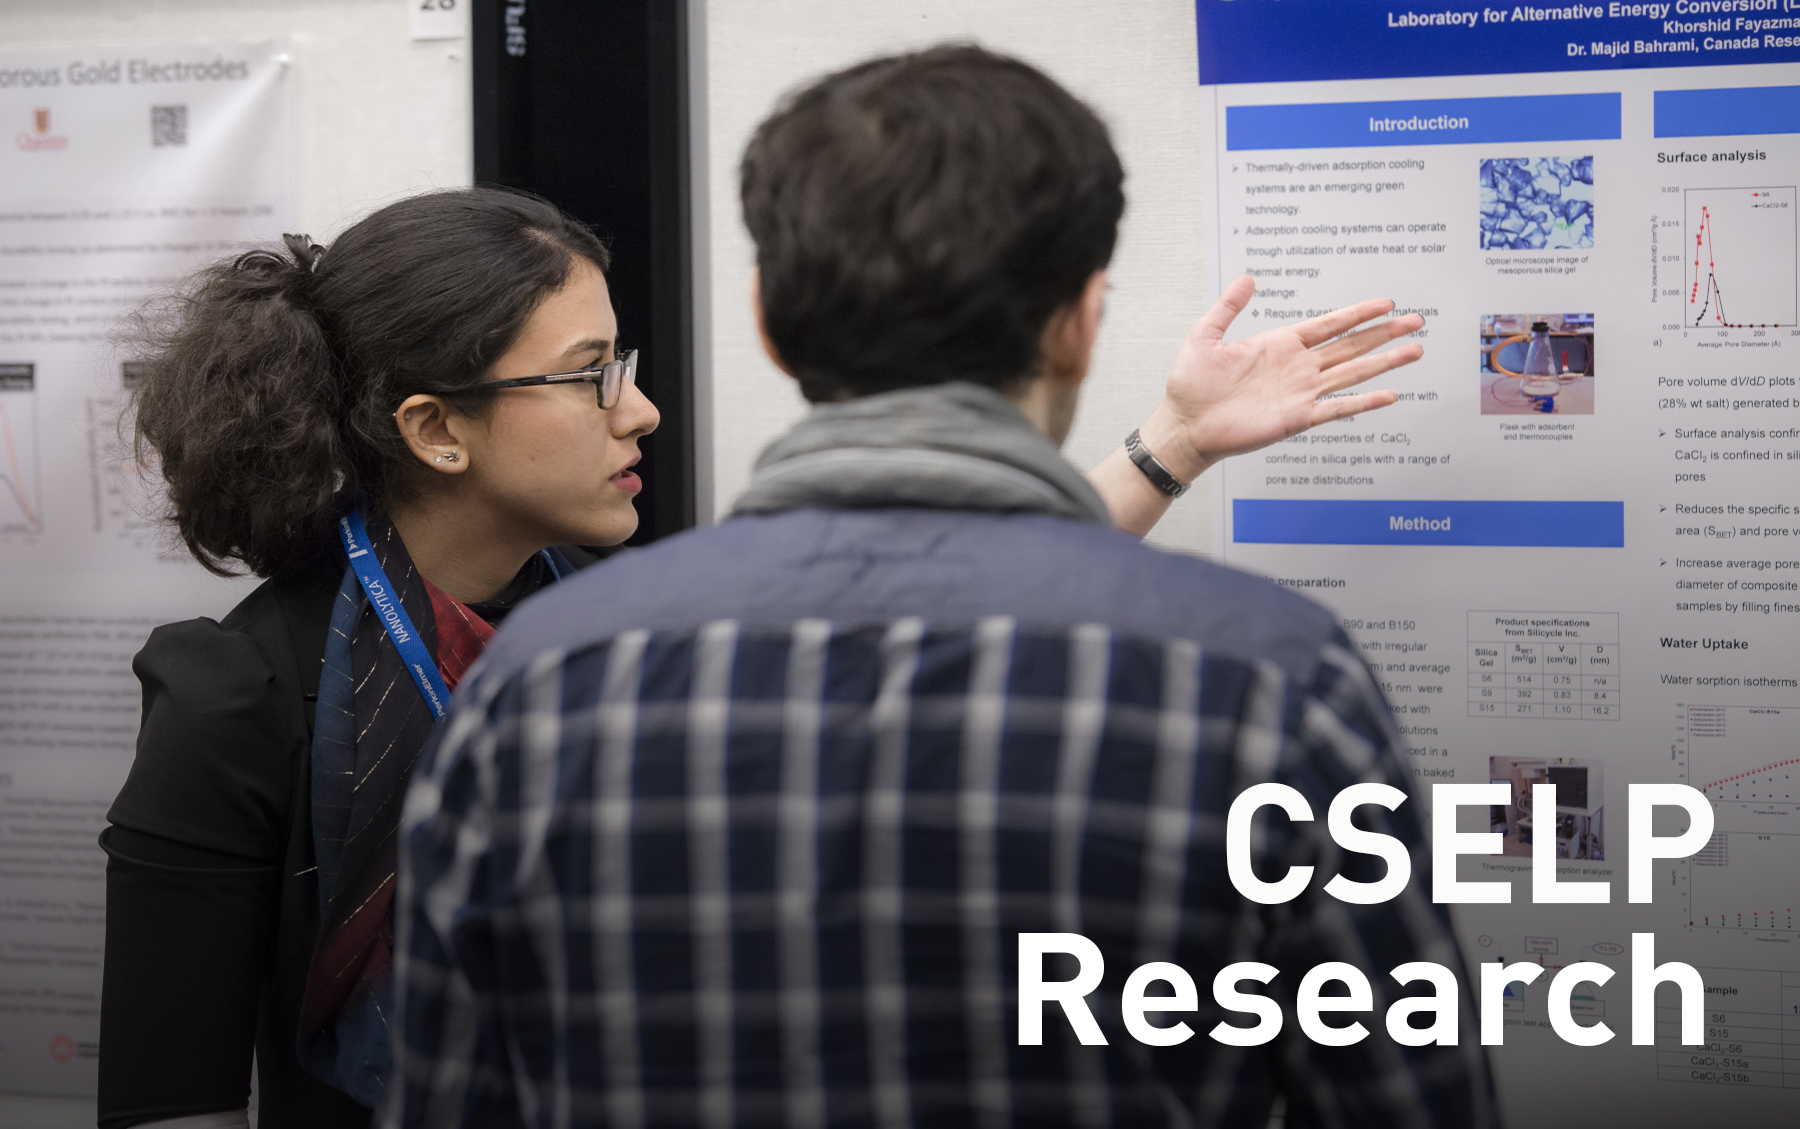 Current CSELP Research